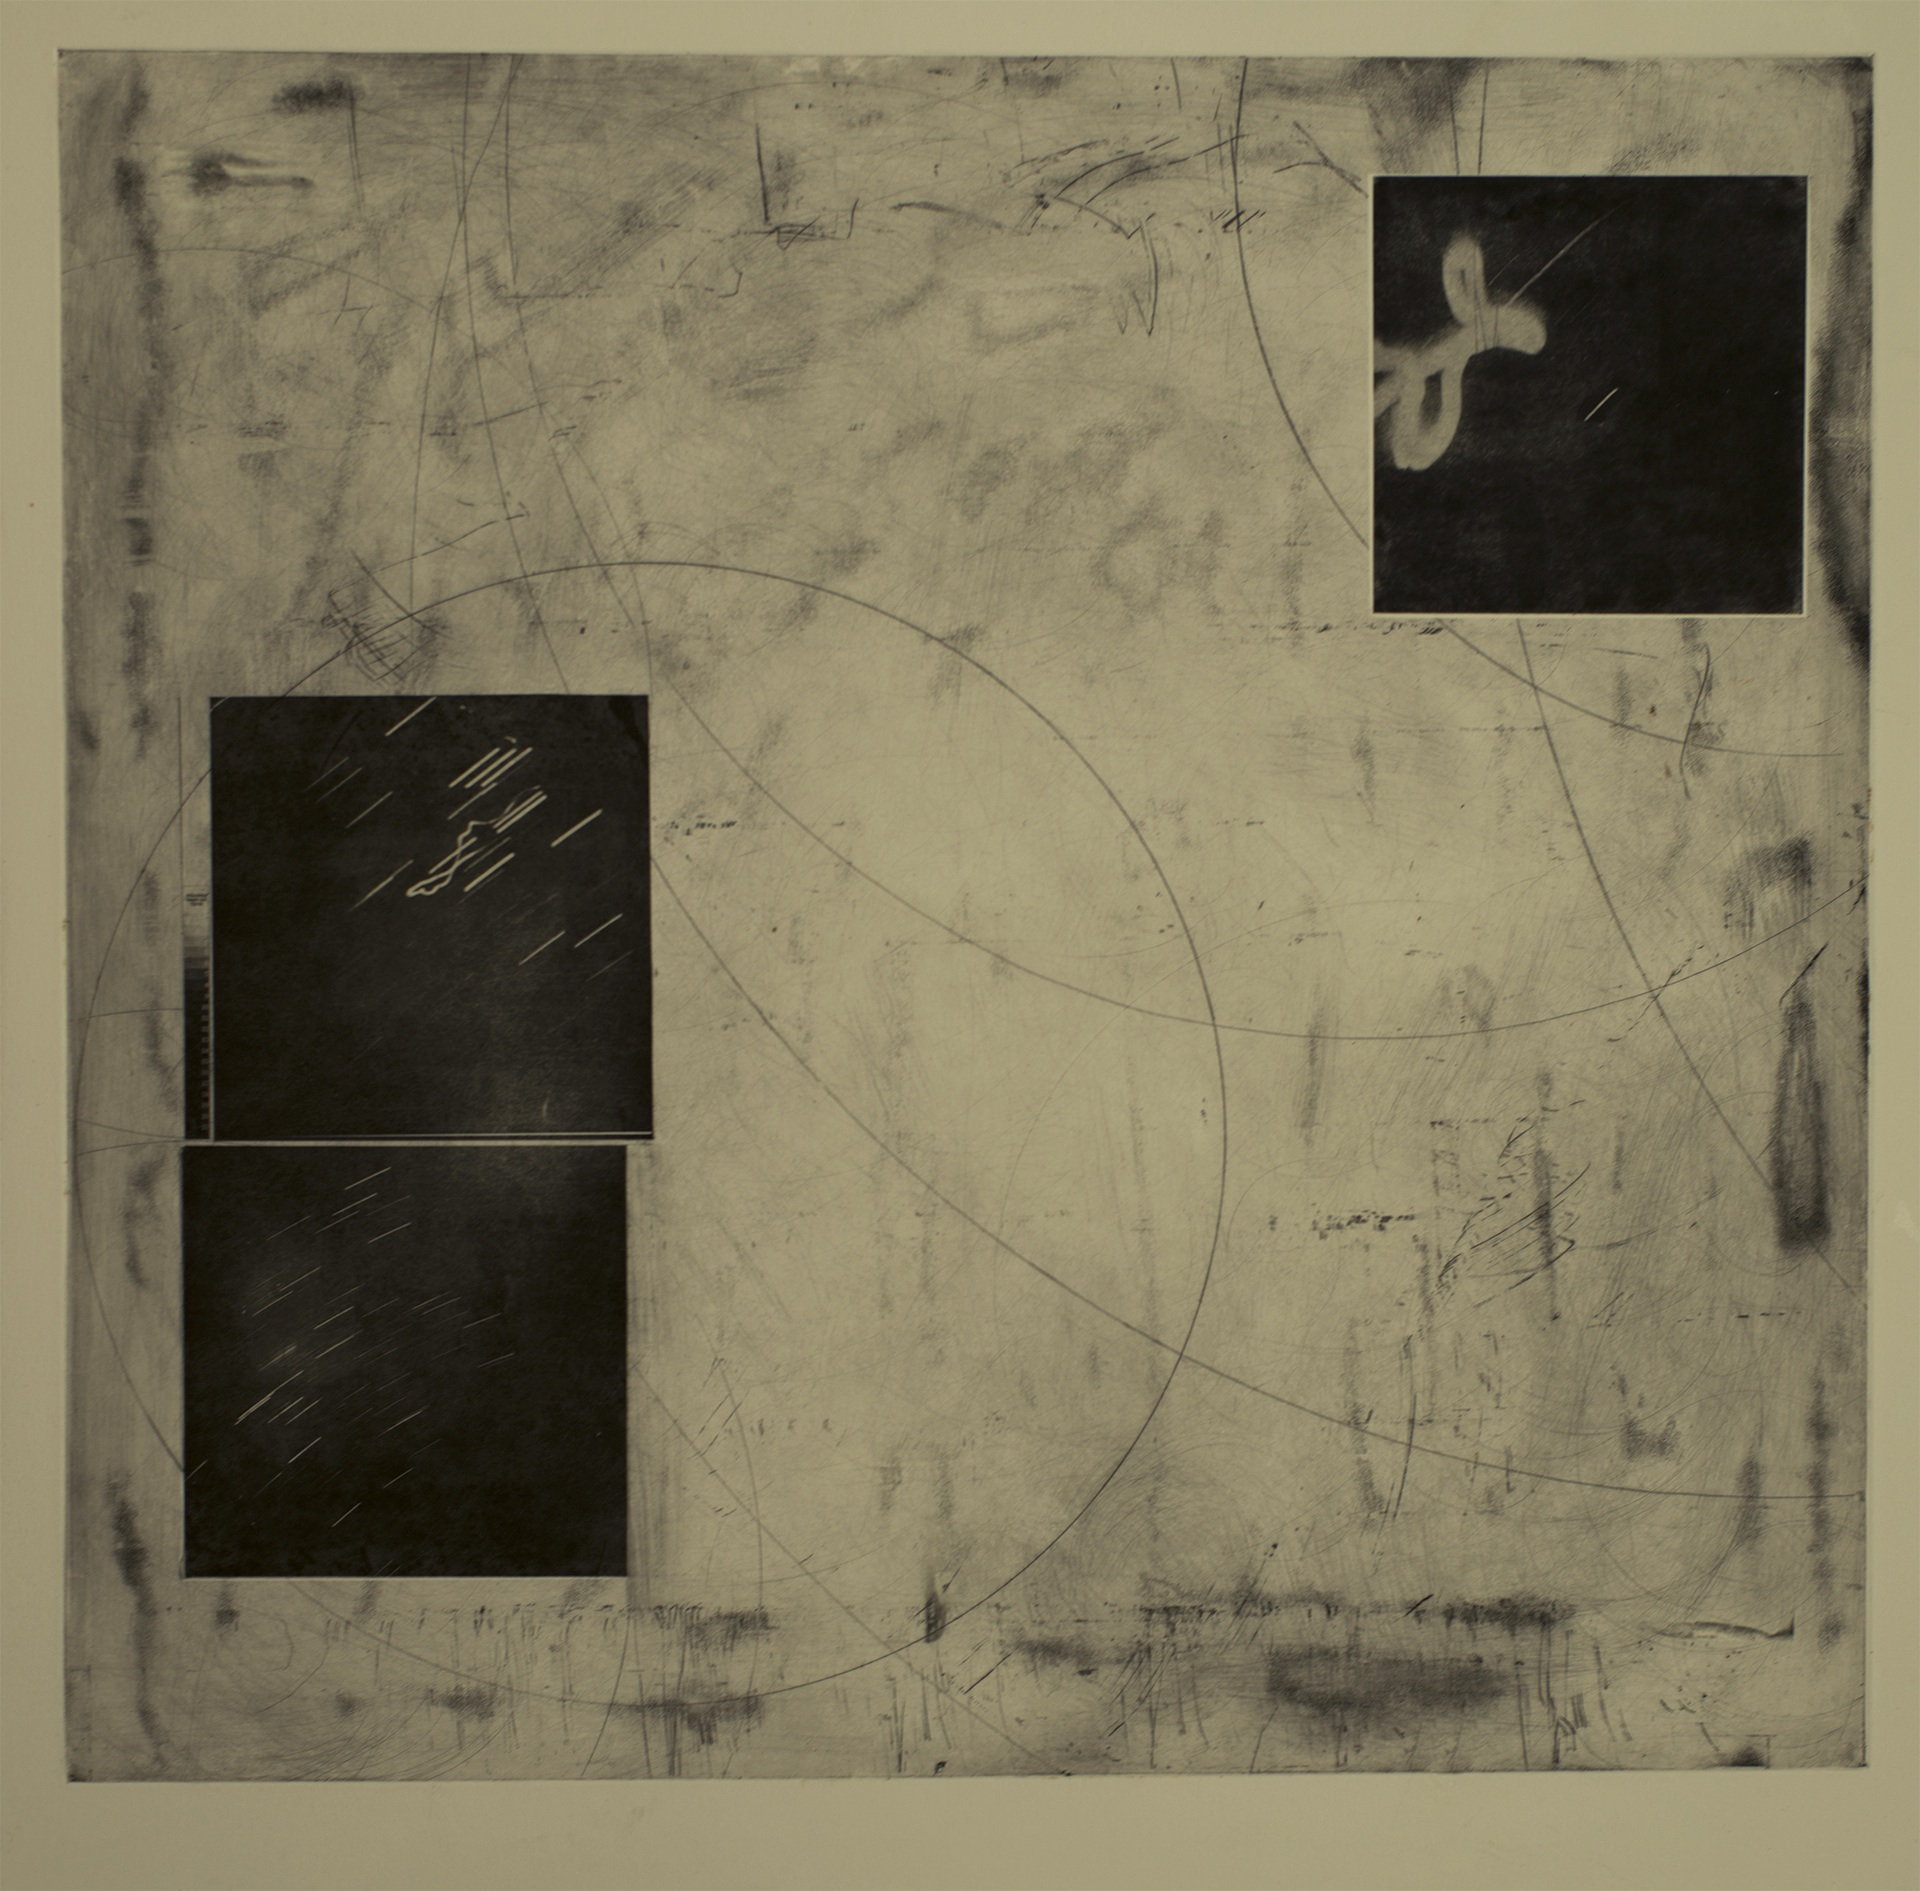 Miguel G. Counahan   Cabo Polonio (Polonium Cape) ,   2019 Photogravure, drypoint, etching, and chine-collé Sheet: 39 3/8 x 39 3/8 inches Printed by artist; published by Zopilote Inc. Edition: 5 Courtesy of the artist